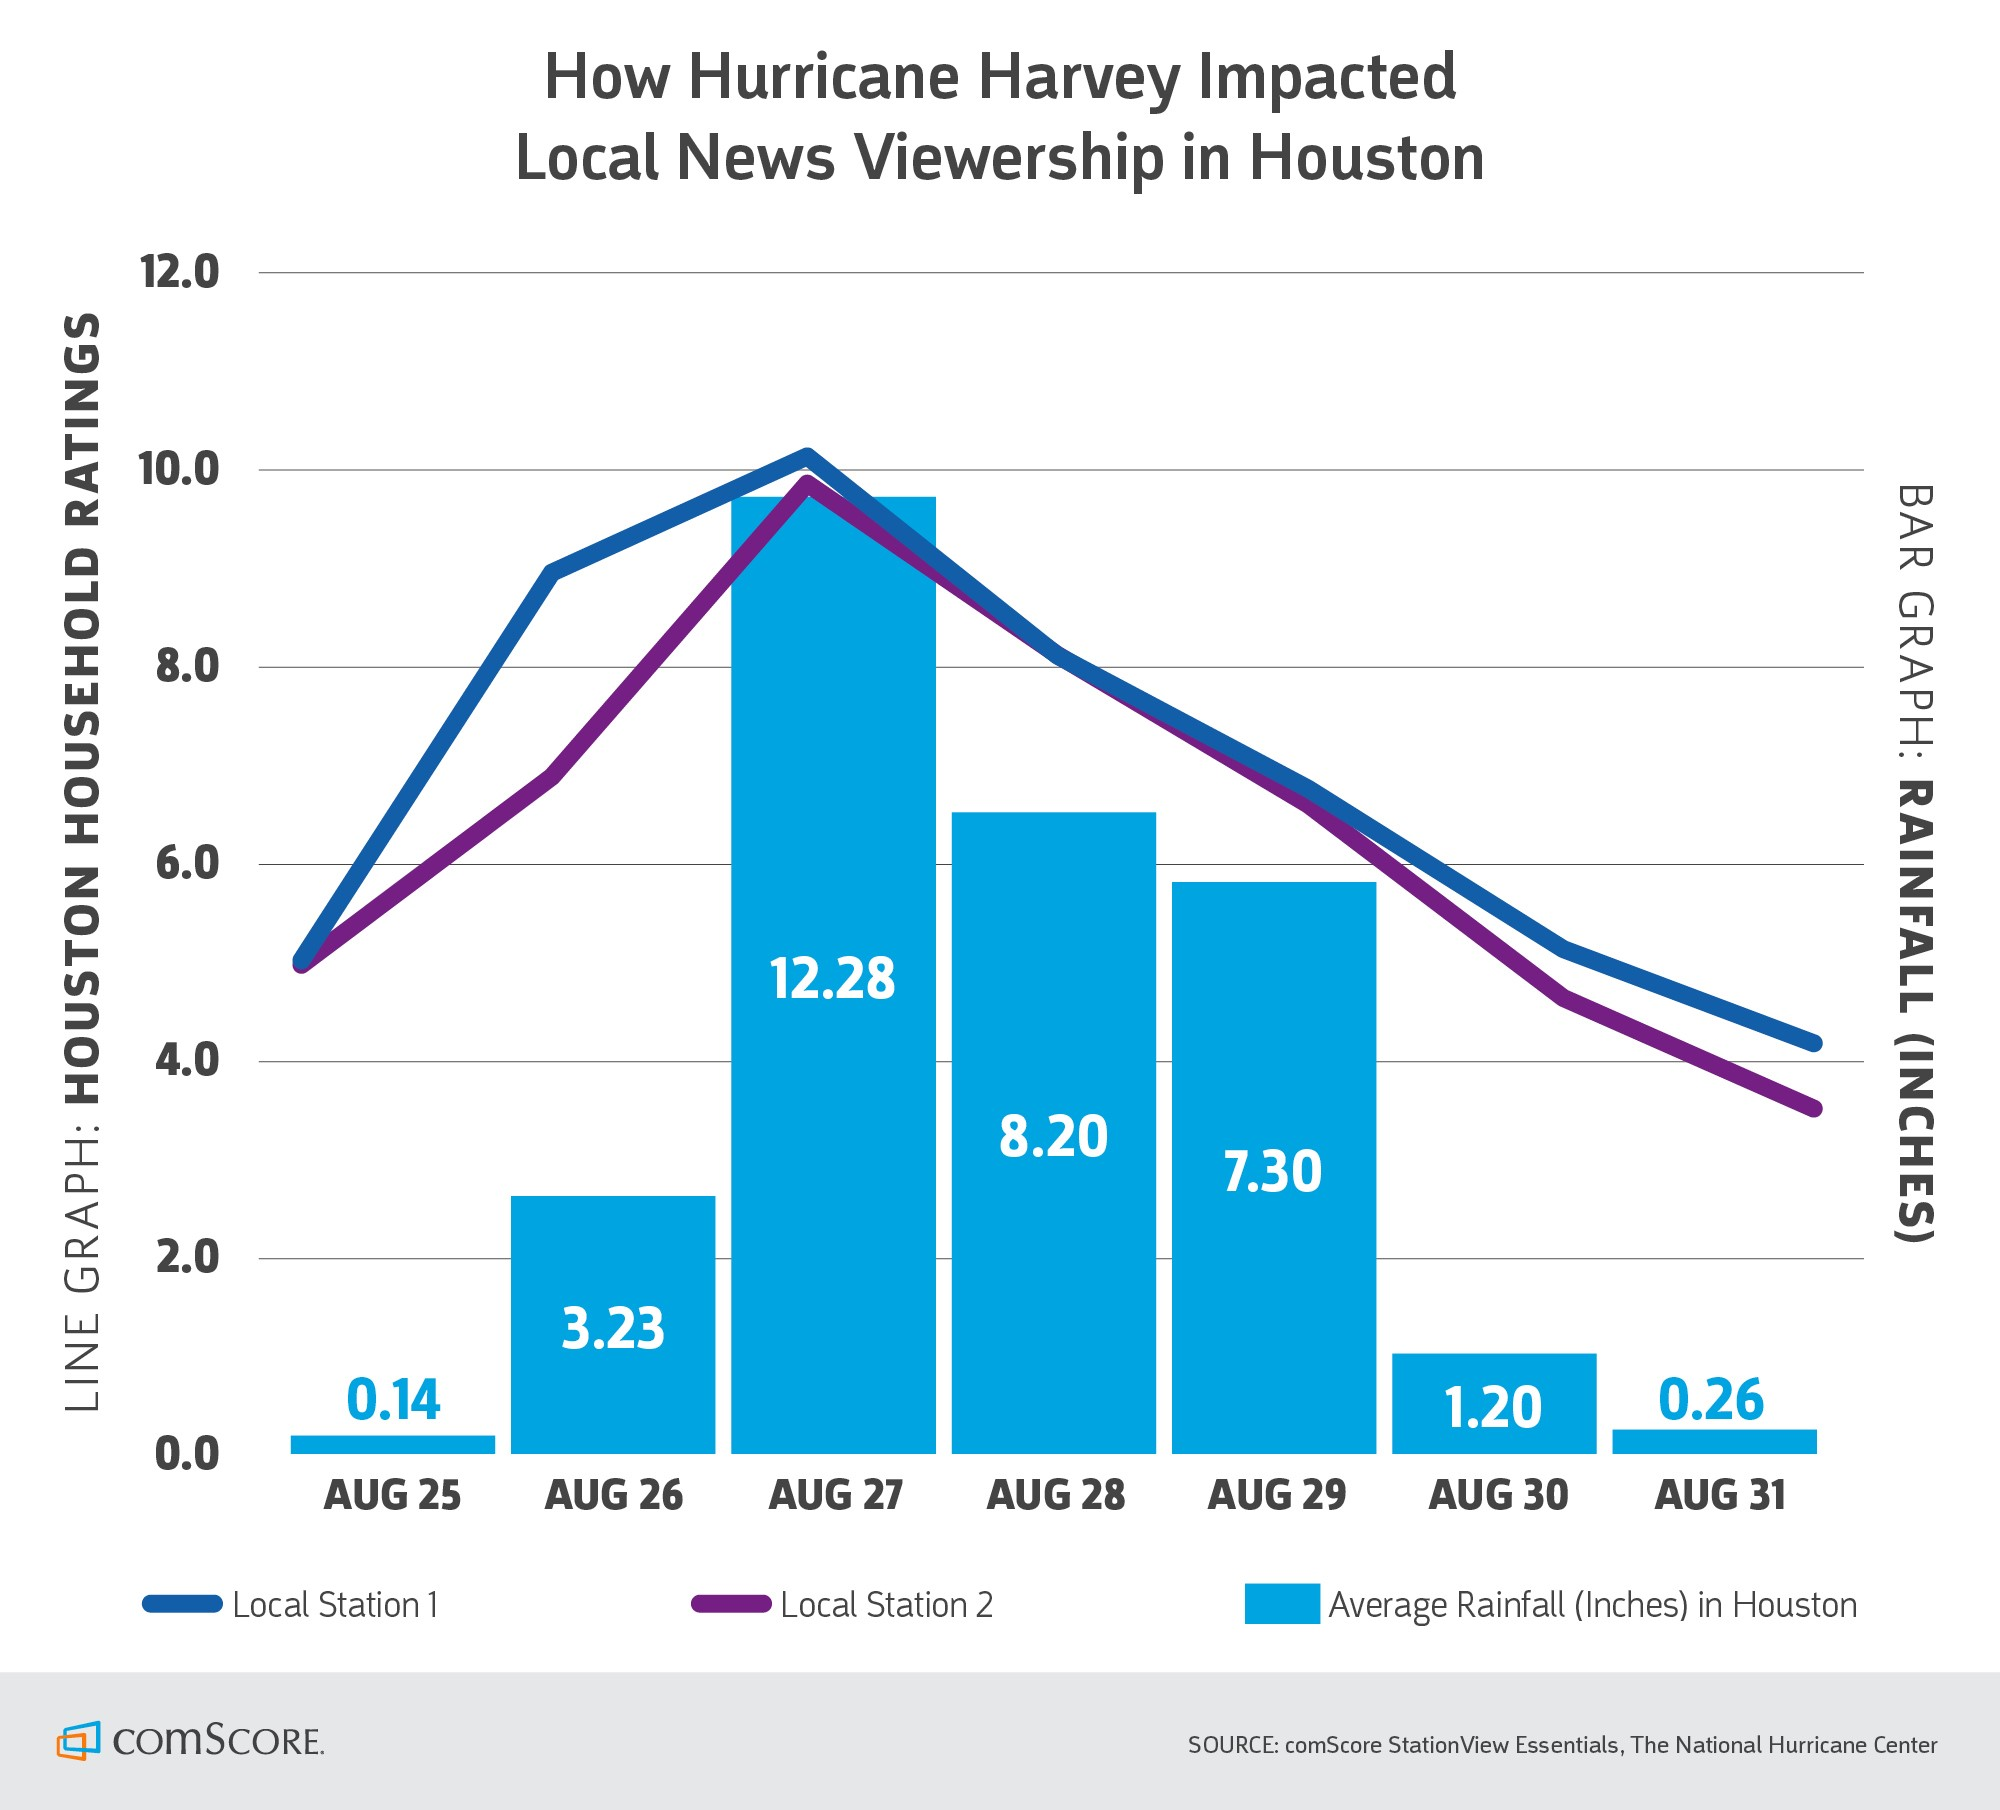 How Hurricane Harvey Impacted Local News Viewership in Houston